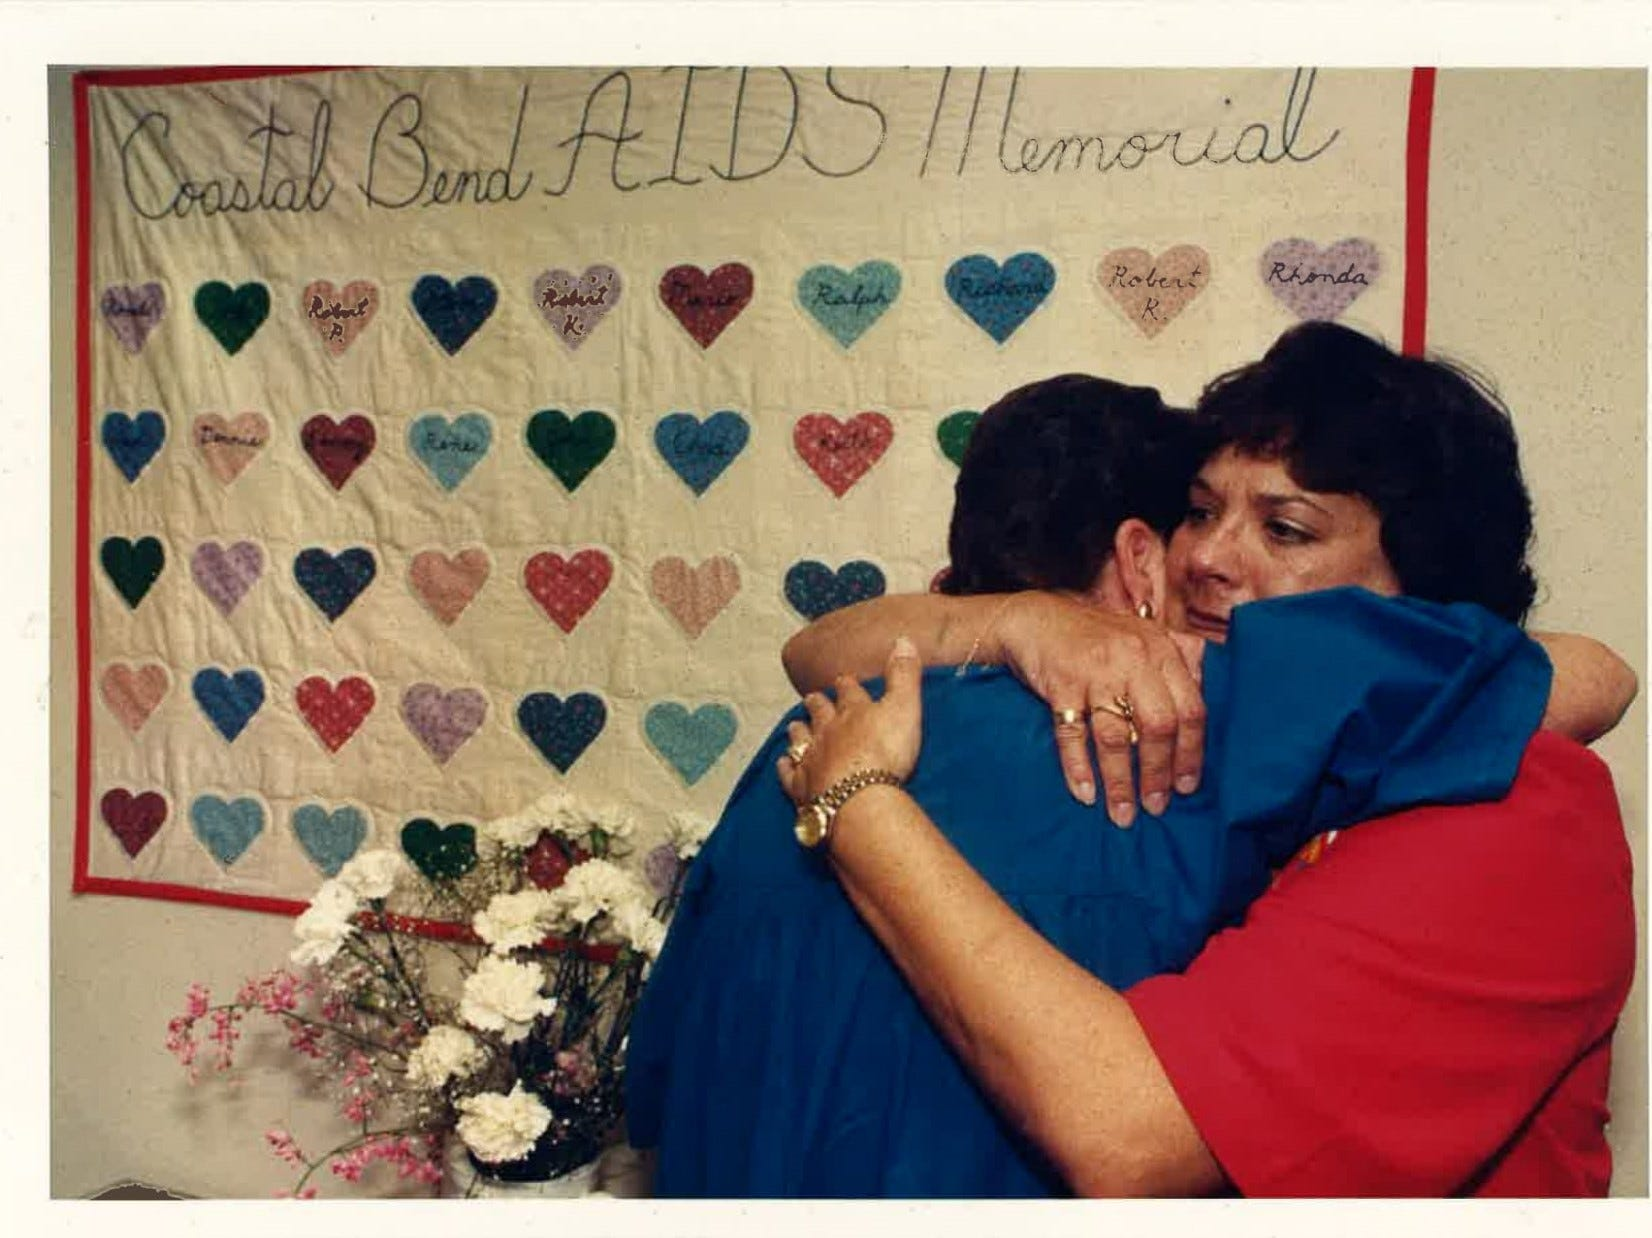 Judy Hale hugs Lisa Franke in front of the Coastal Bend Aids Memorial Quilt at the Coastal Bend Aids Foundation, which is now the Coastal Bend Wellness Foundation. The picture was published in the Caller-Times on August 19, 1988